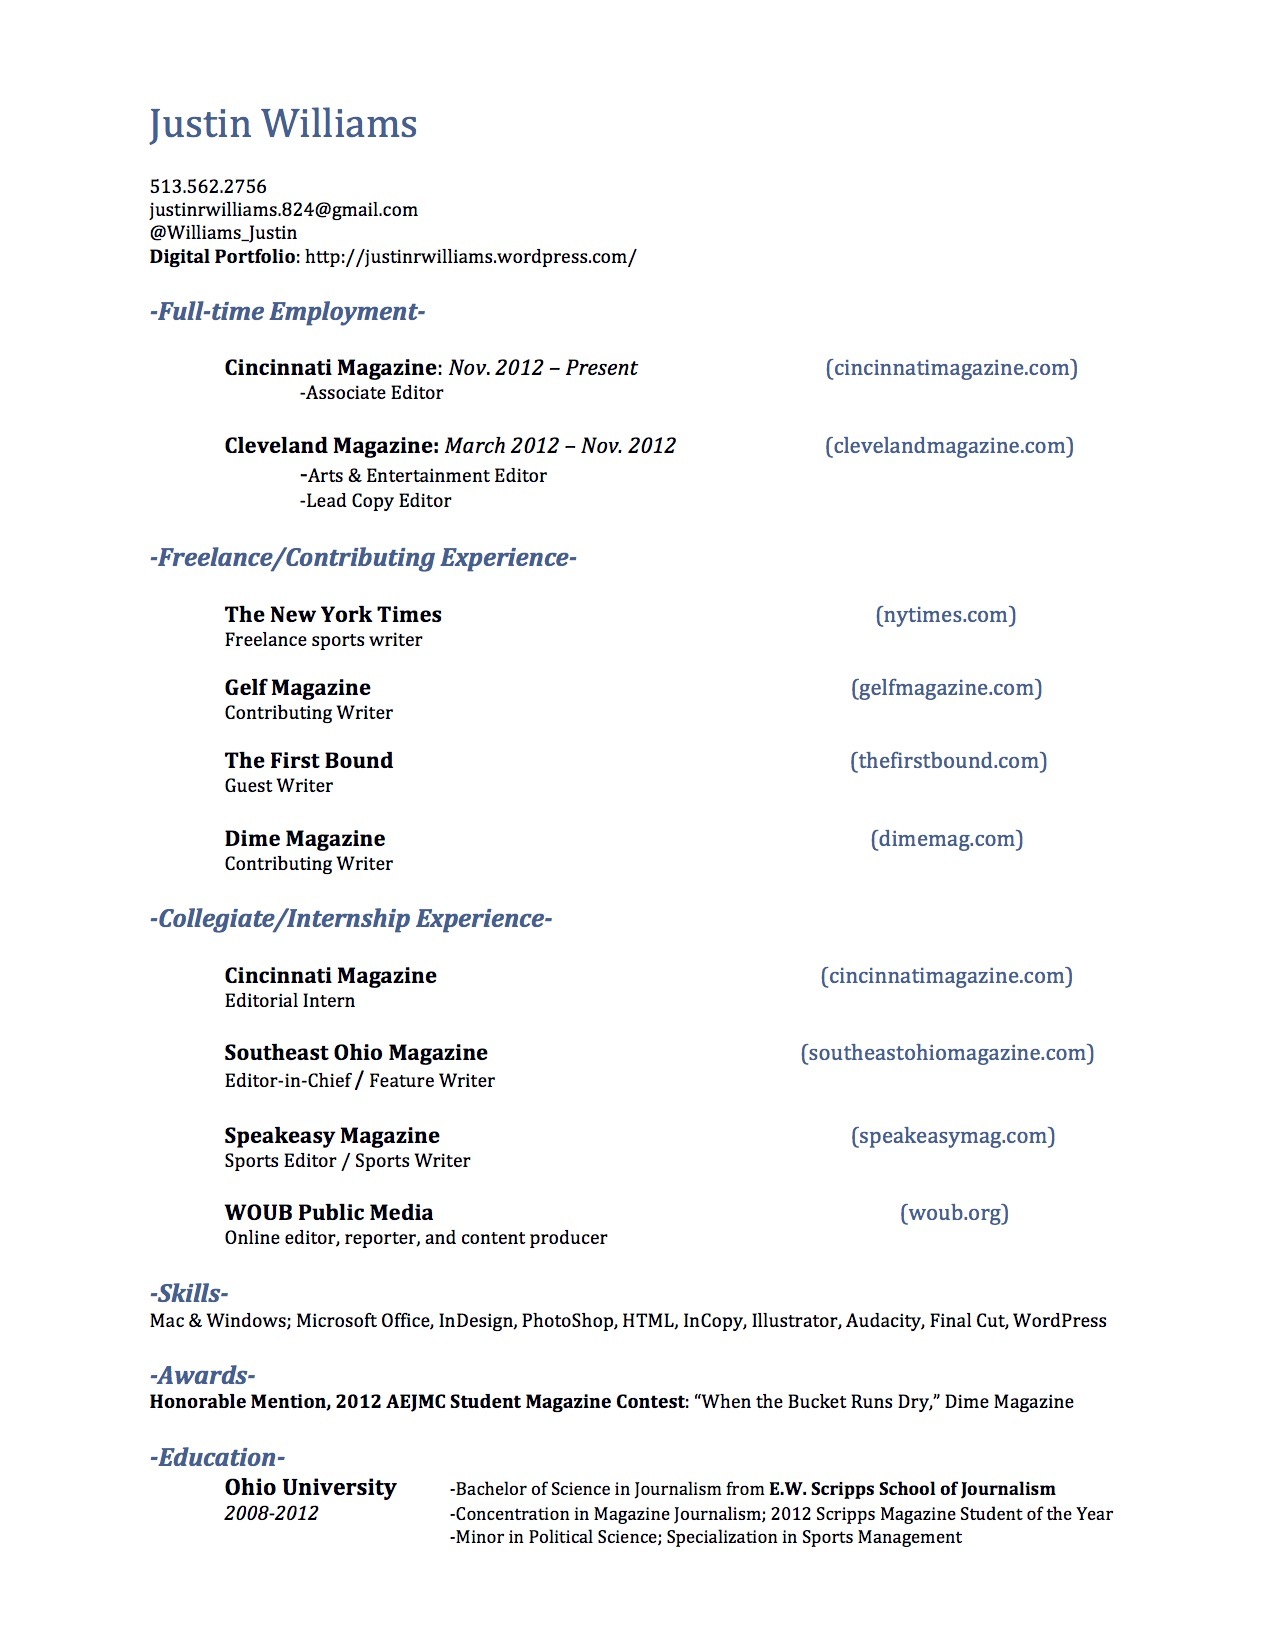 Resume Templates References Available Upon Request Back Gt